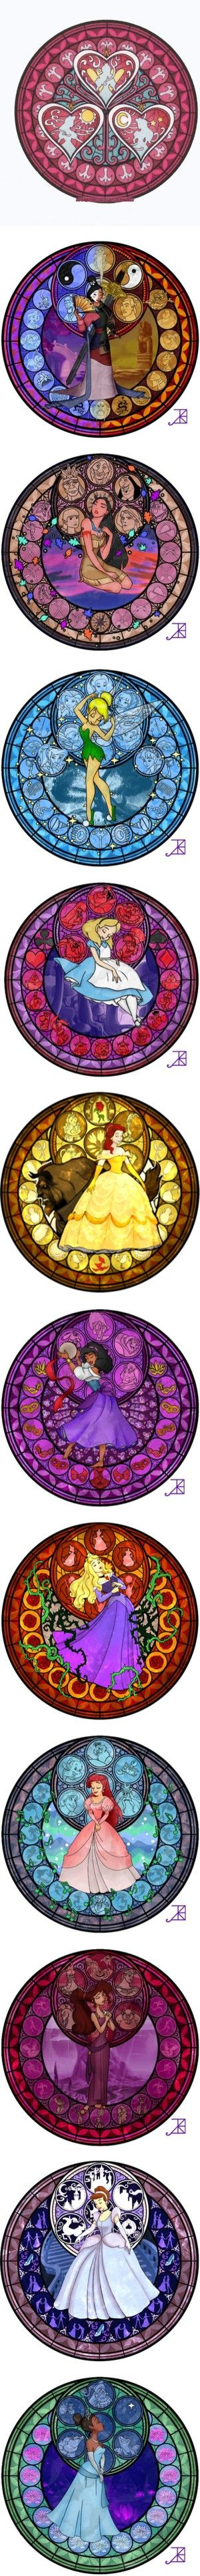 """""""Disney princess stained glass"""" by shygirl1229 ❤ liked on Polyvore"""